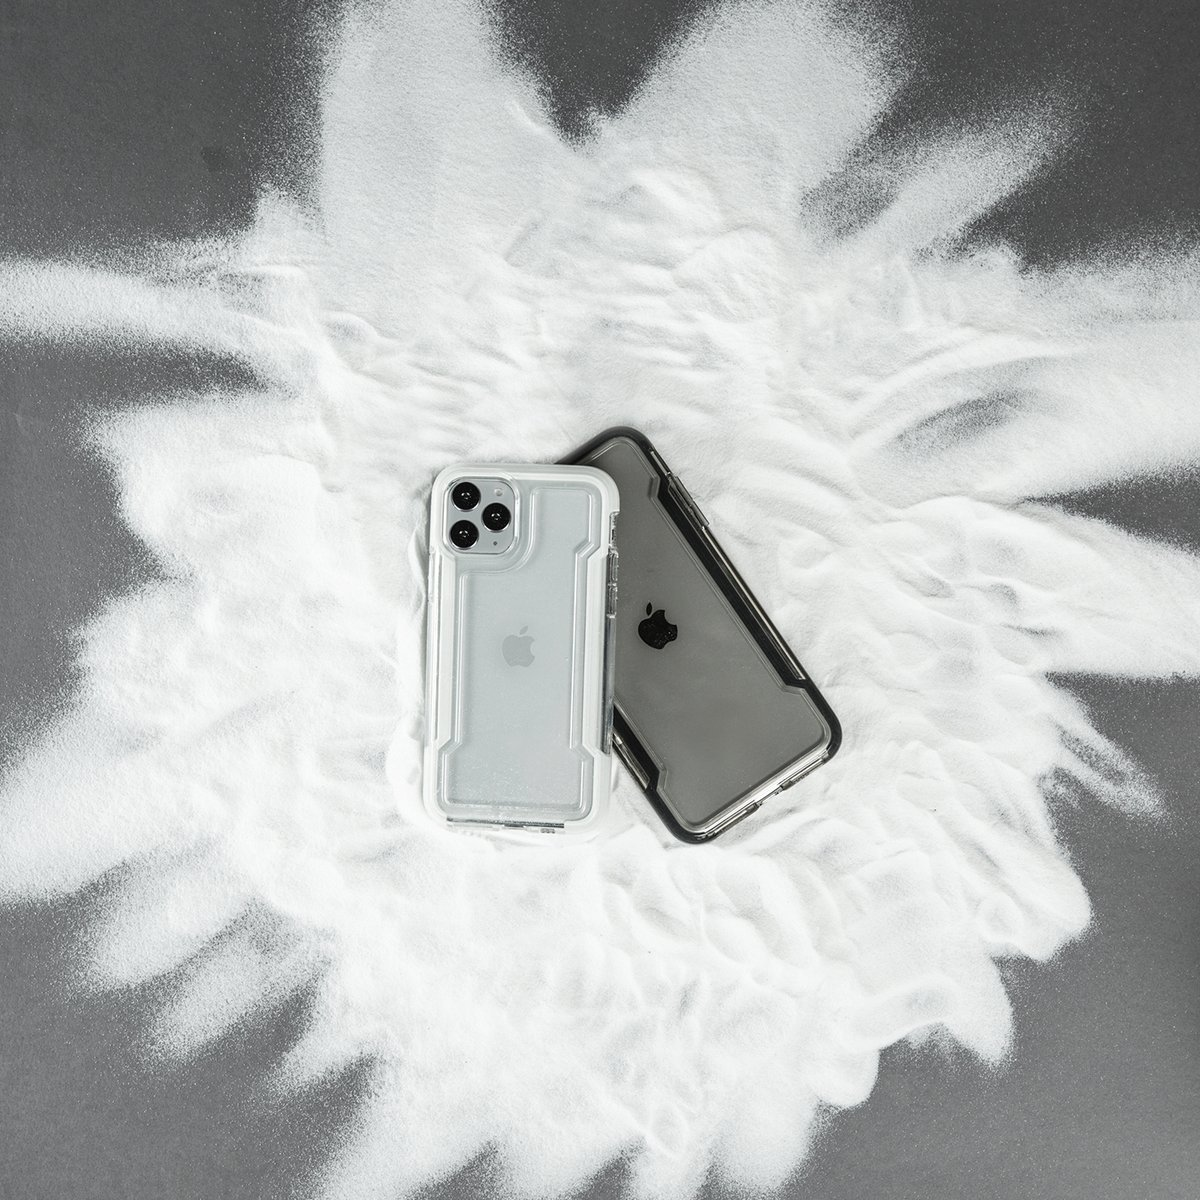 BOOM! Defense Clear is coming atcha as one of our most popular cases 👊  https://t.co/r41pXrUyzK #DefenseClear https://t.co/tz7FHotiM3